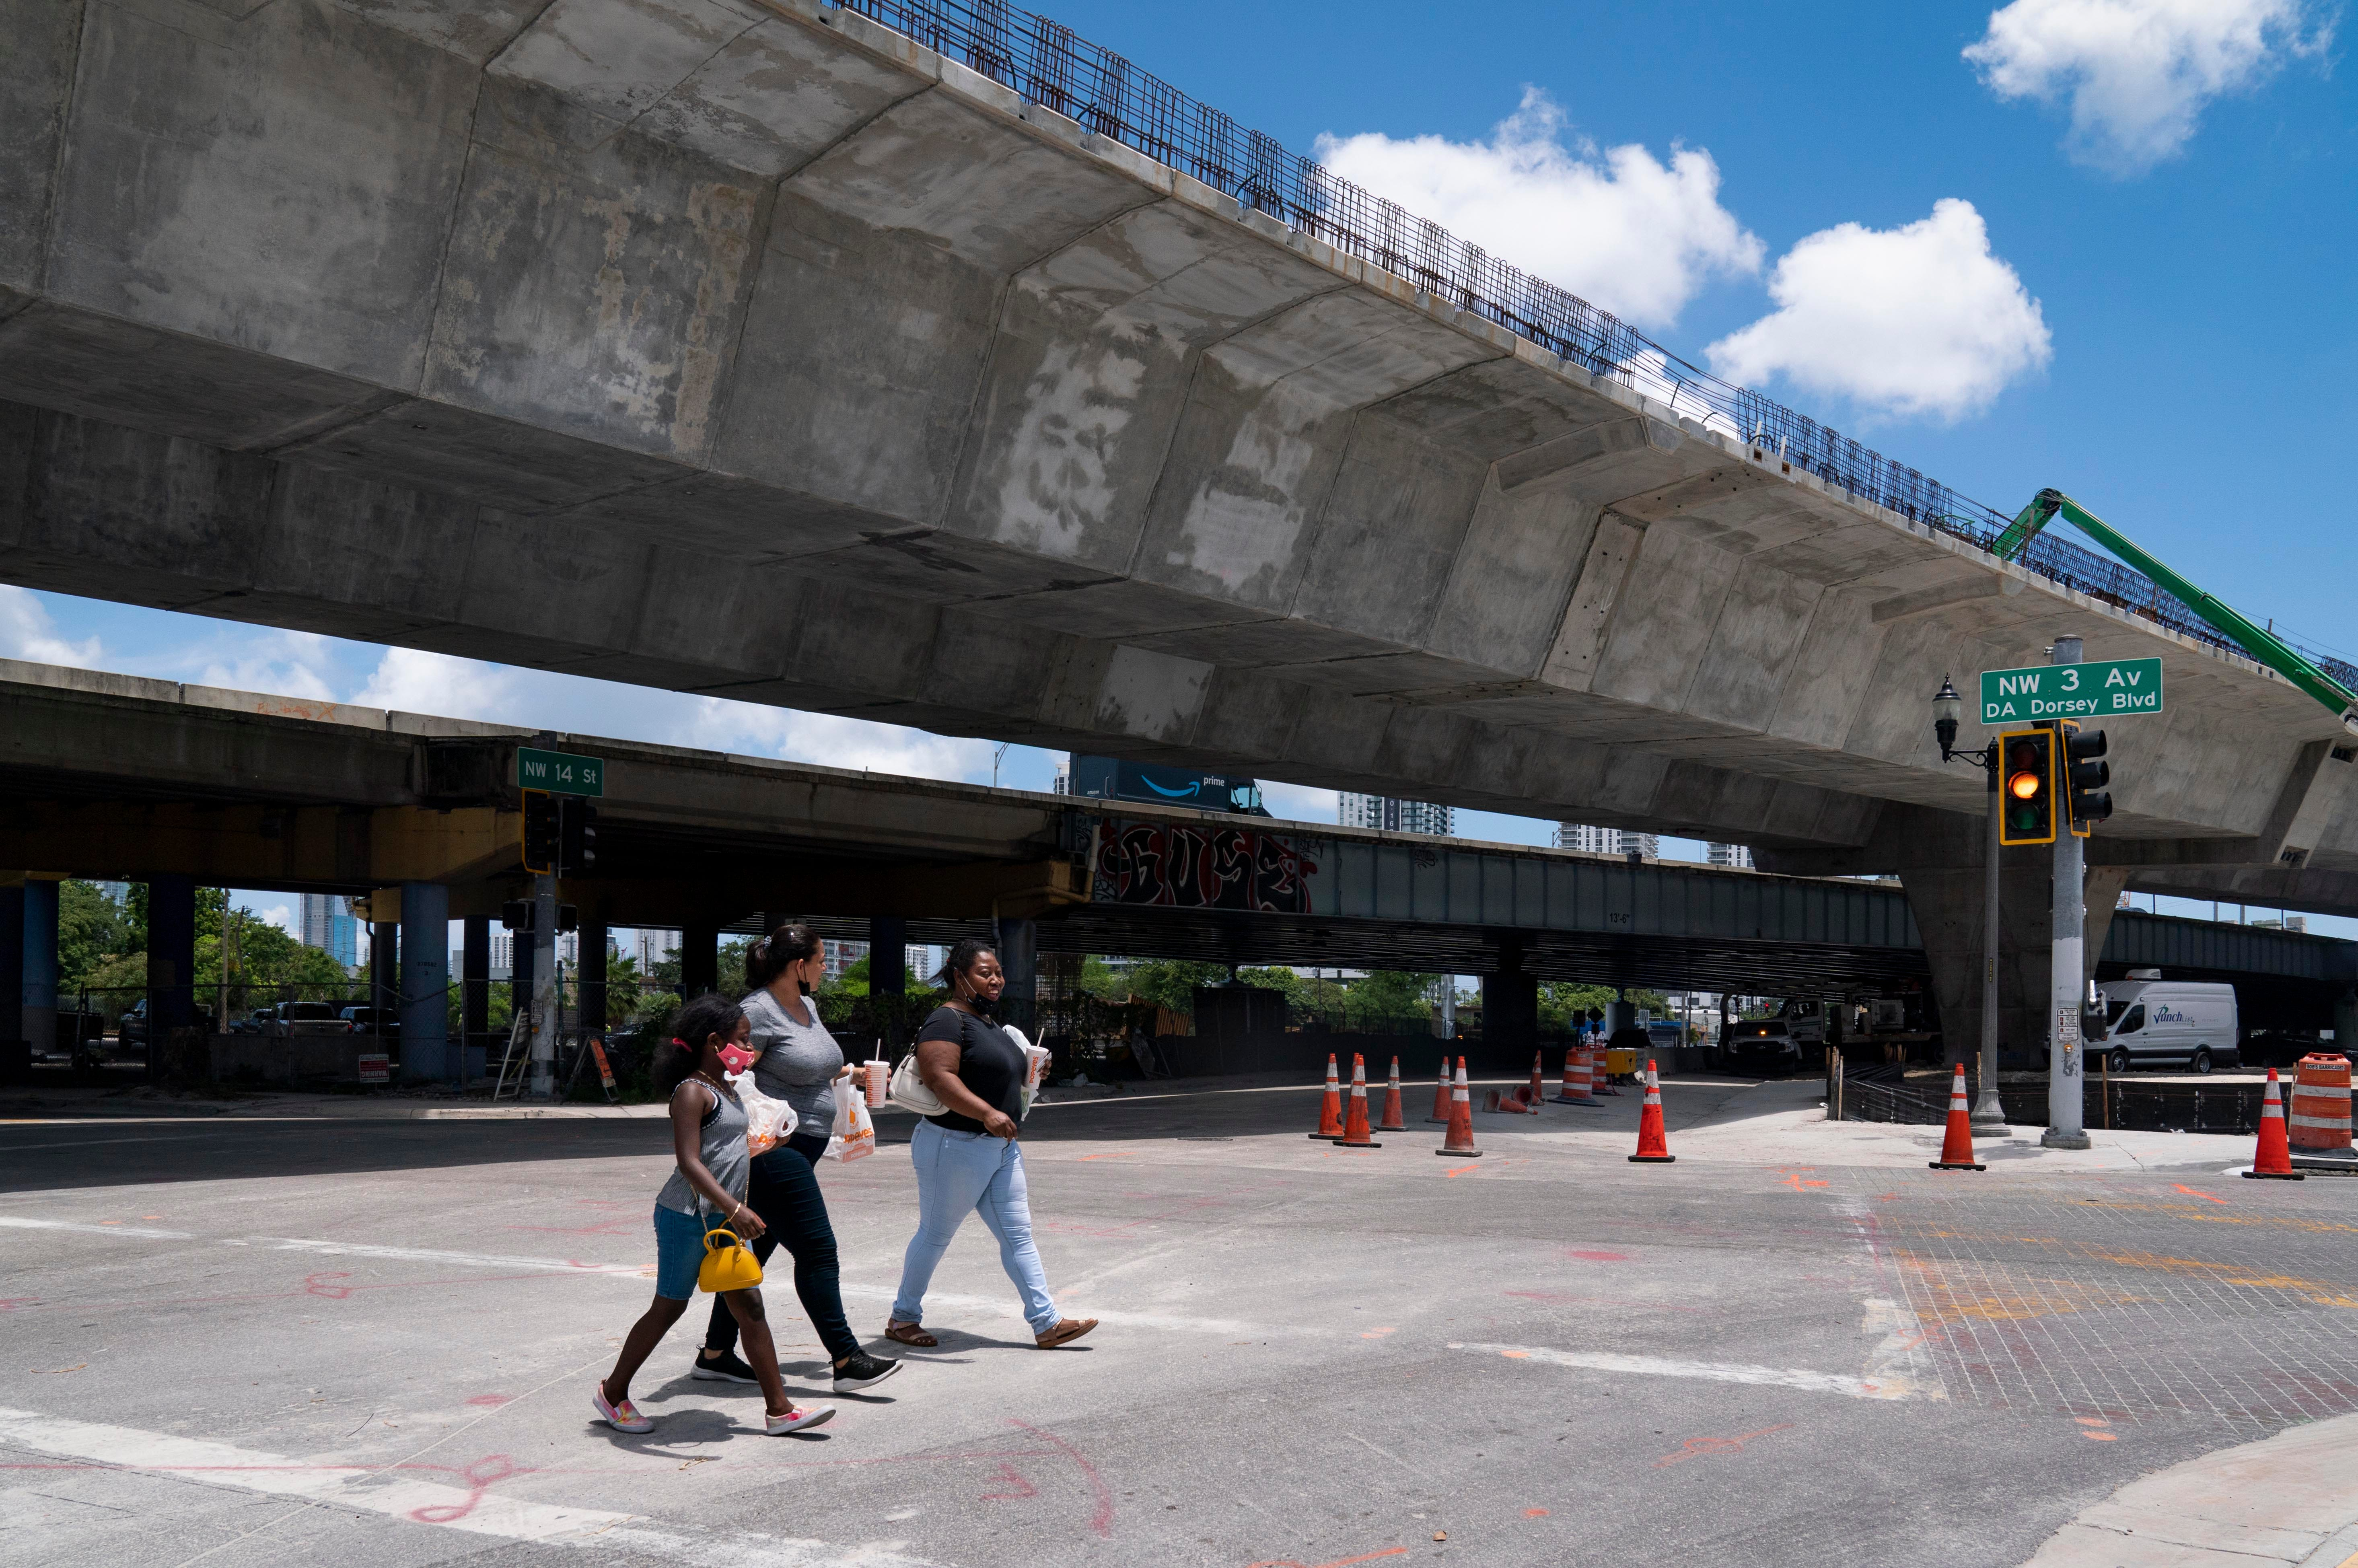 The $802 million I-395/SR 836/I-95 project is underway near Miami's Overtown neighborhood. When work is complete, 33 acres of currently unusable space under the I-395 corridor will be opened for the enjoyment of residents and visitors.